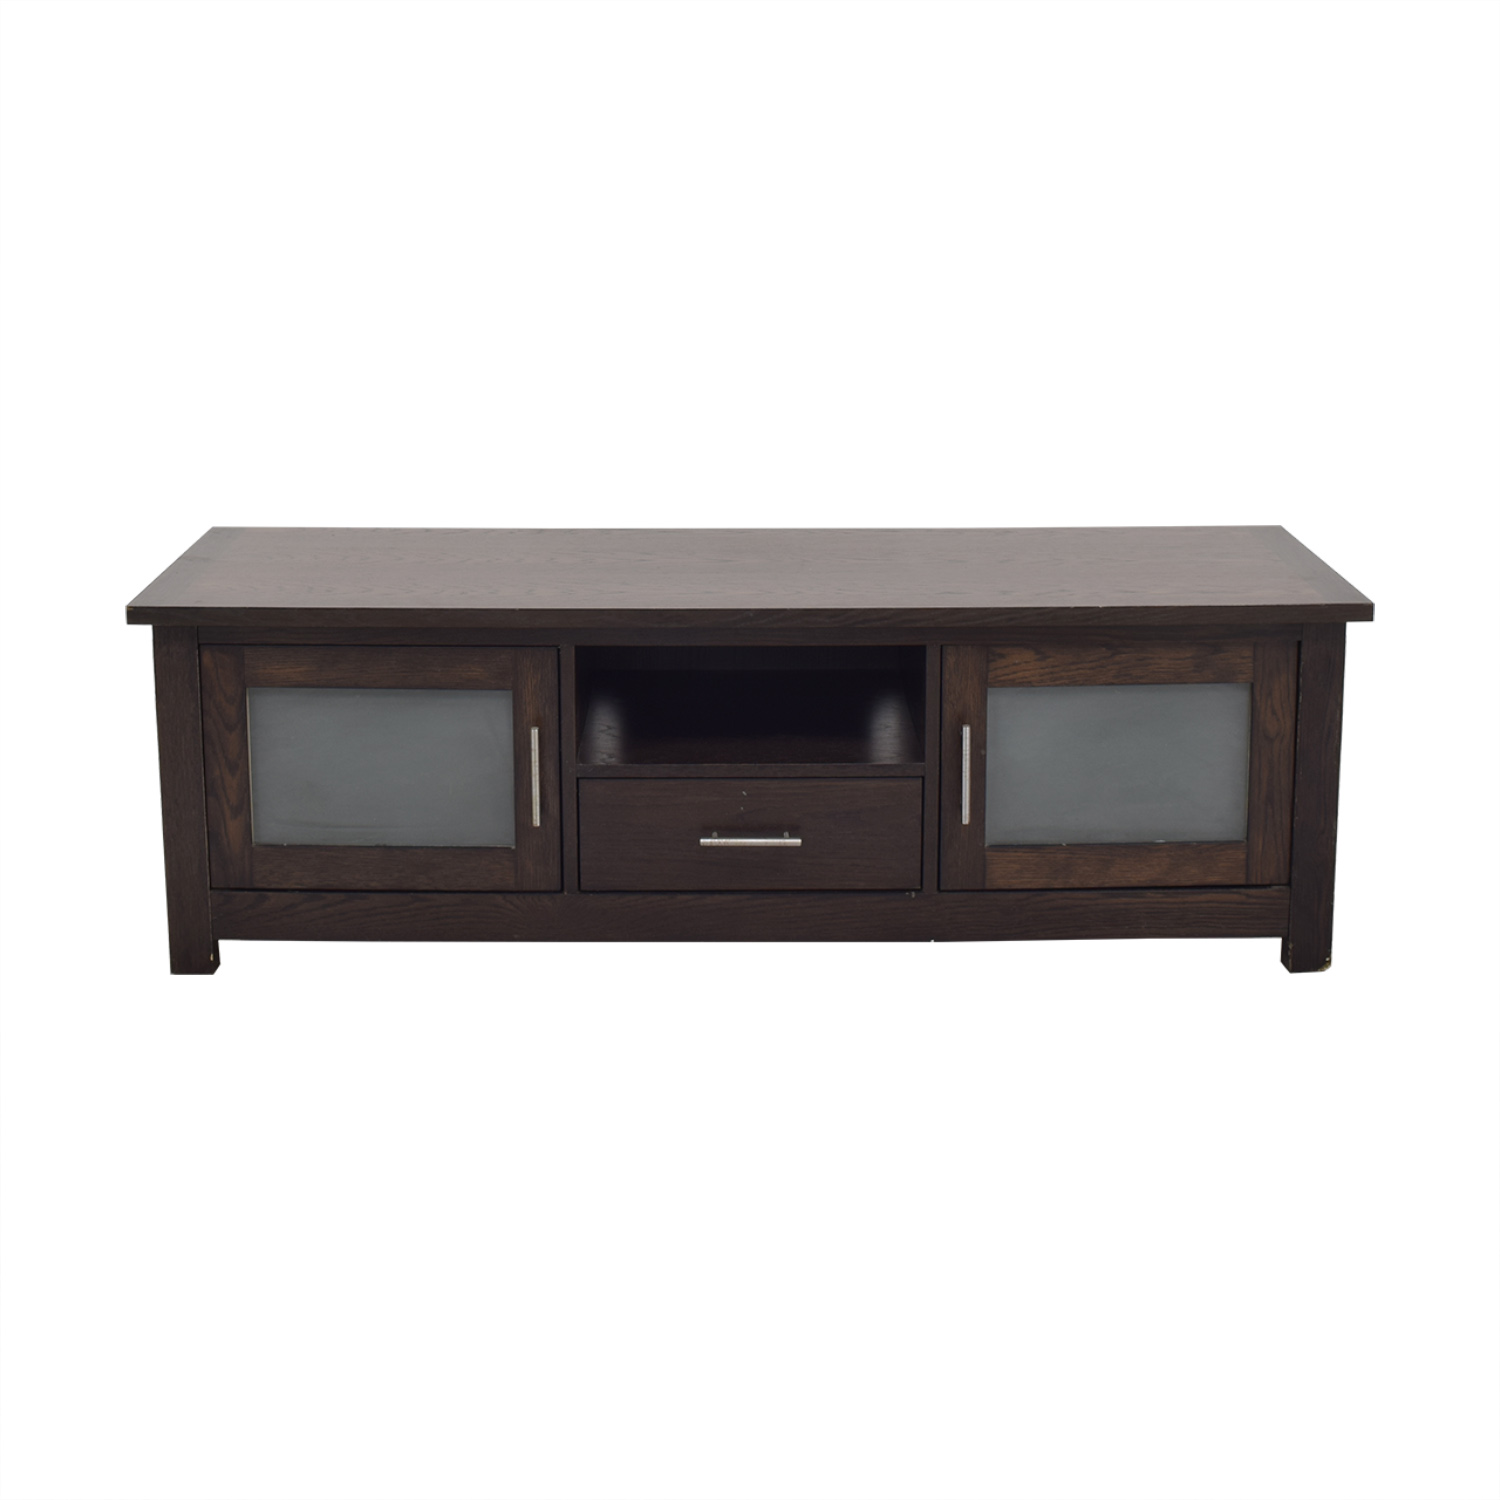 Coaster Fine Furniture Coaster Fine Furniture Media Console used